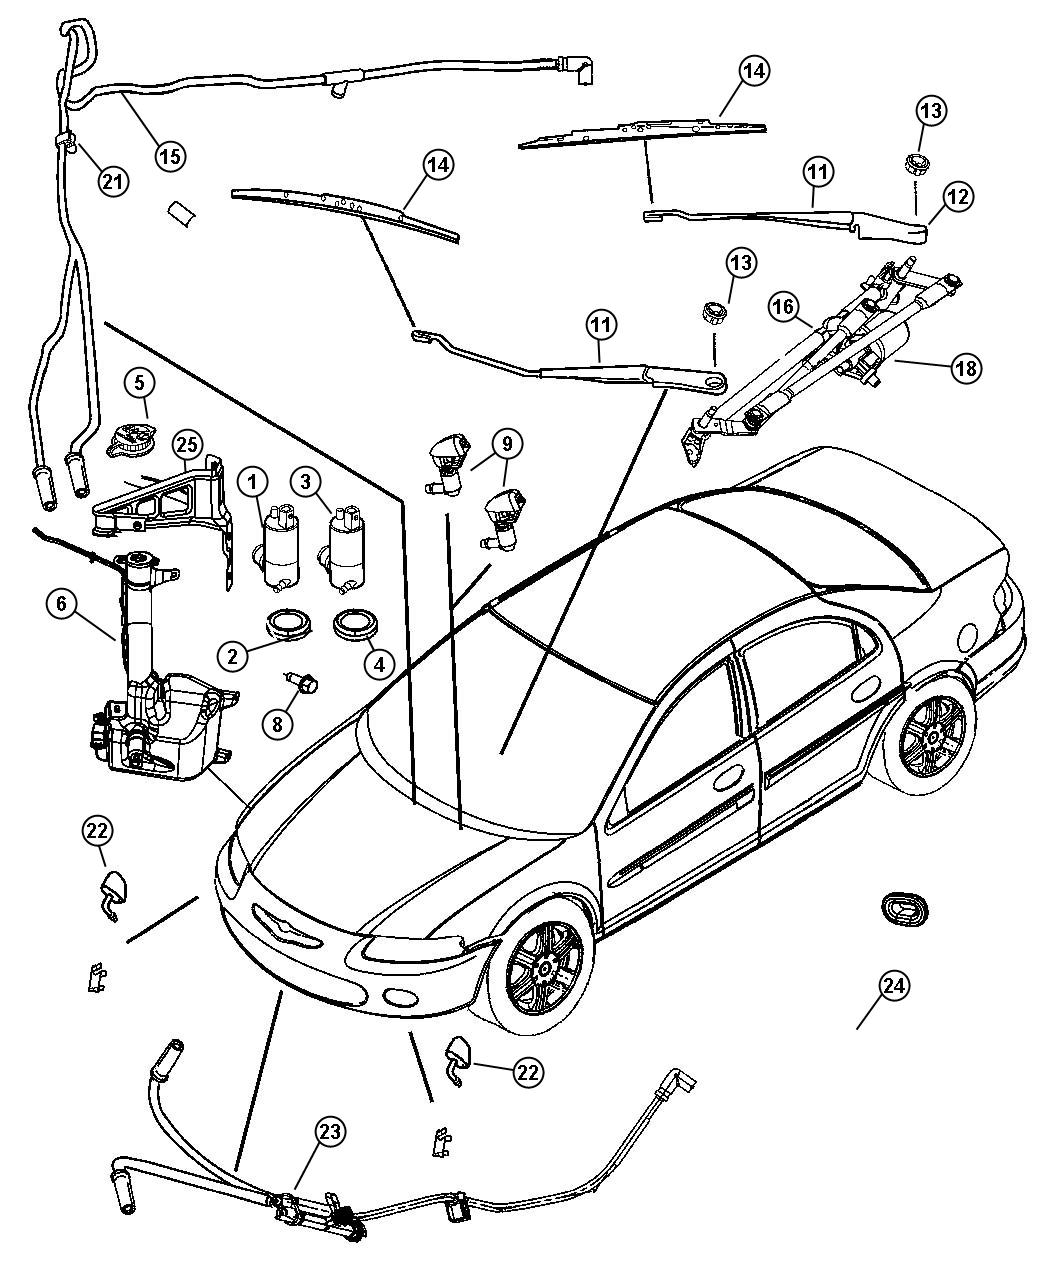 honda cr v 2004 windshield wiper parts diagram